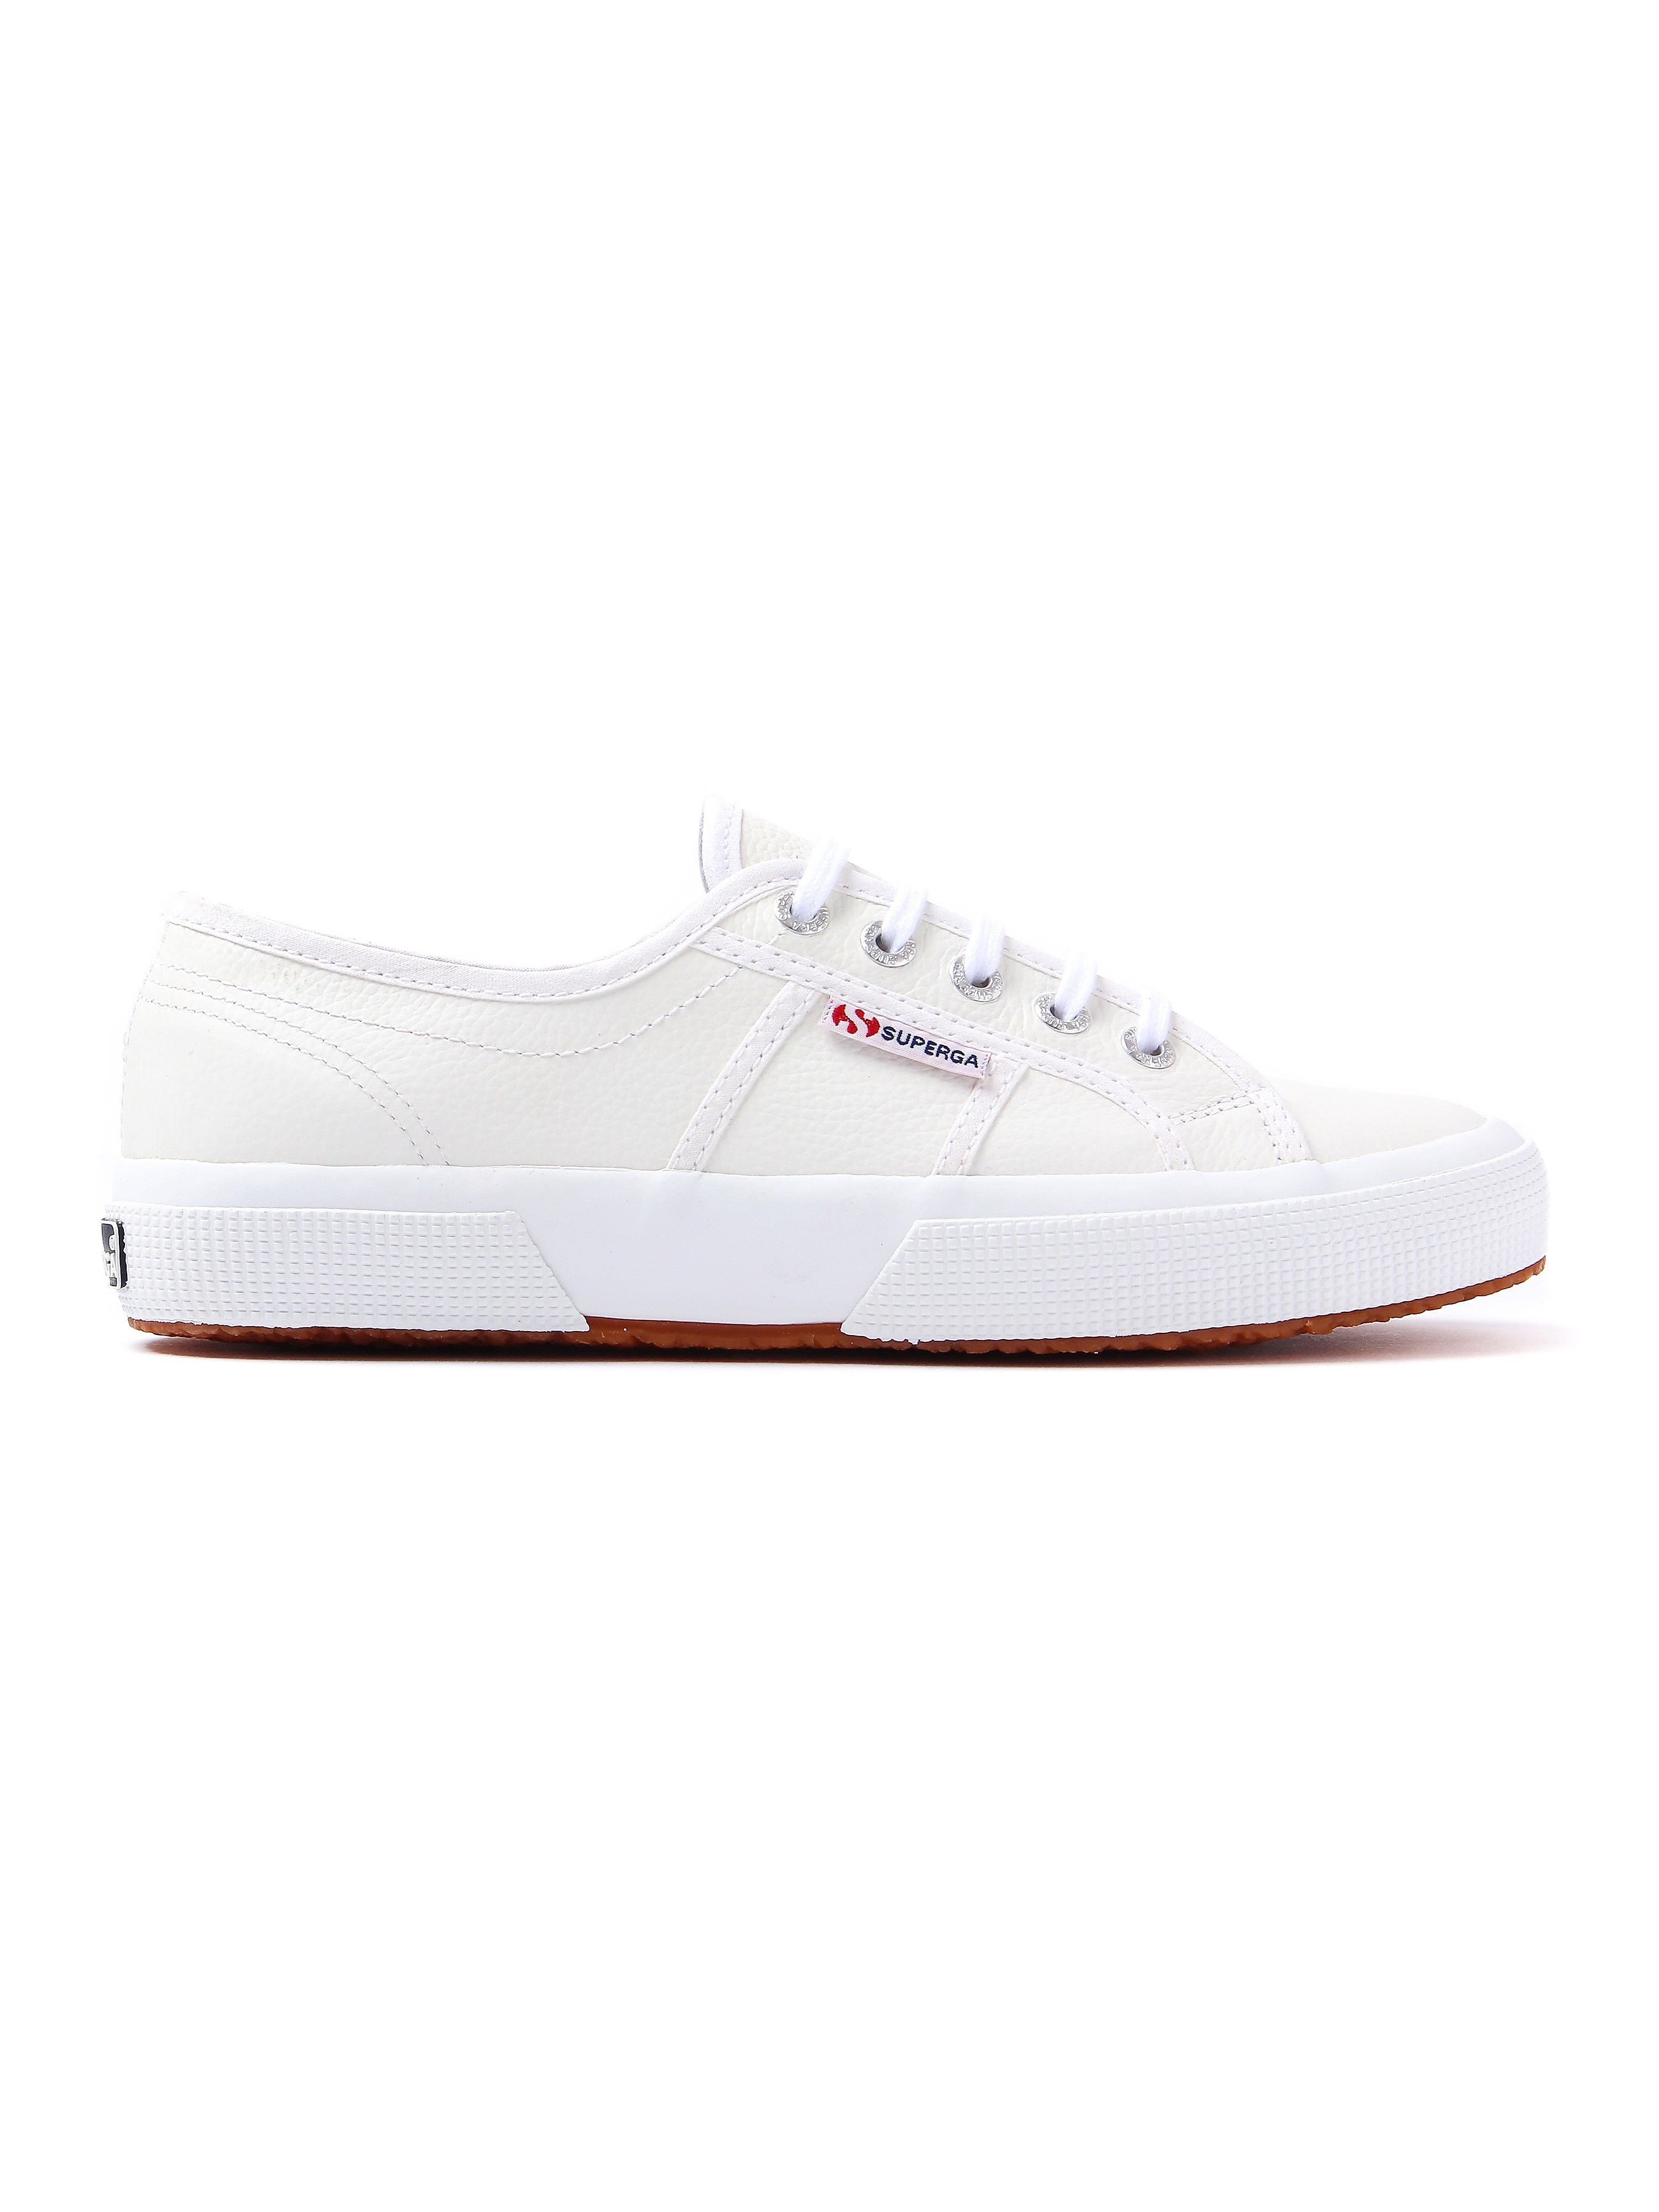 Superga Women's 2750 EFGLU Grained Leather Trainers - White